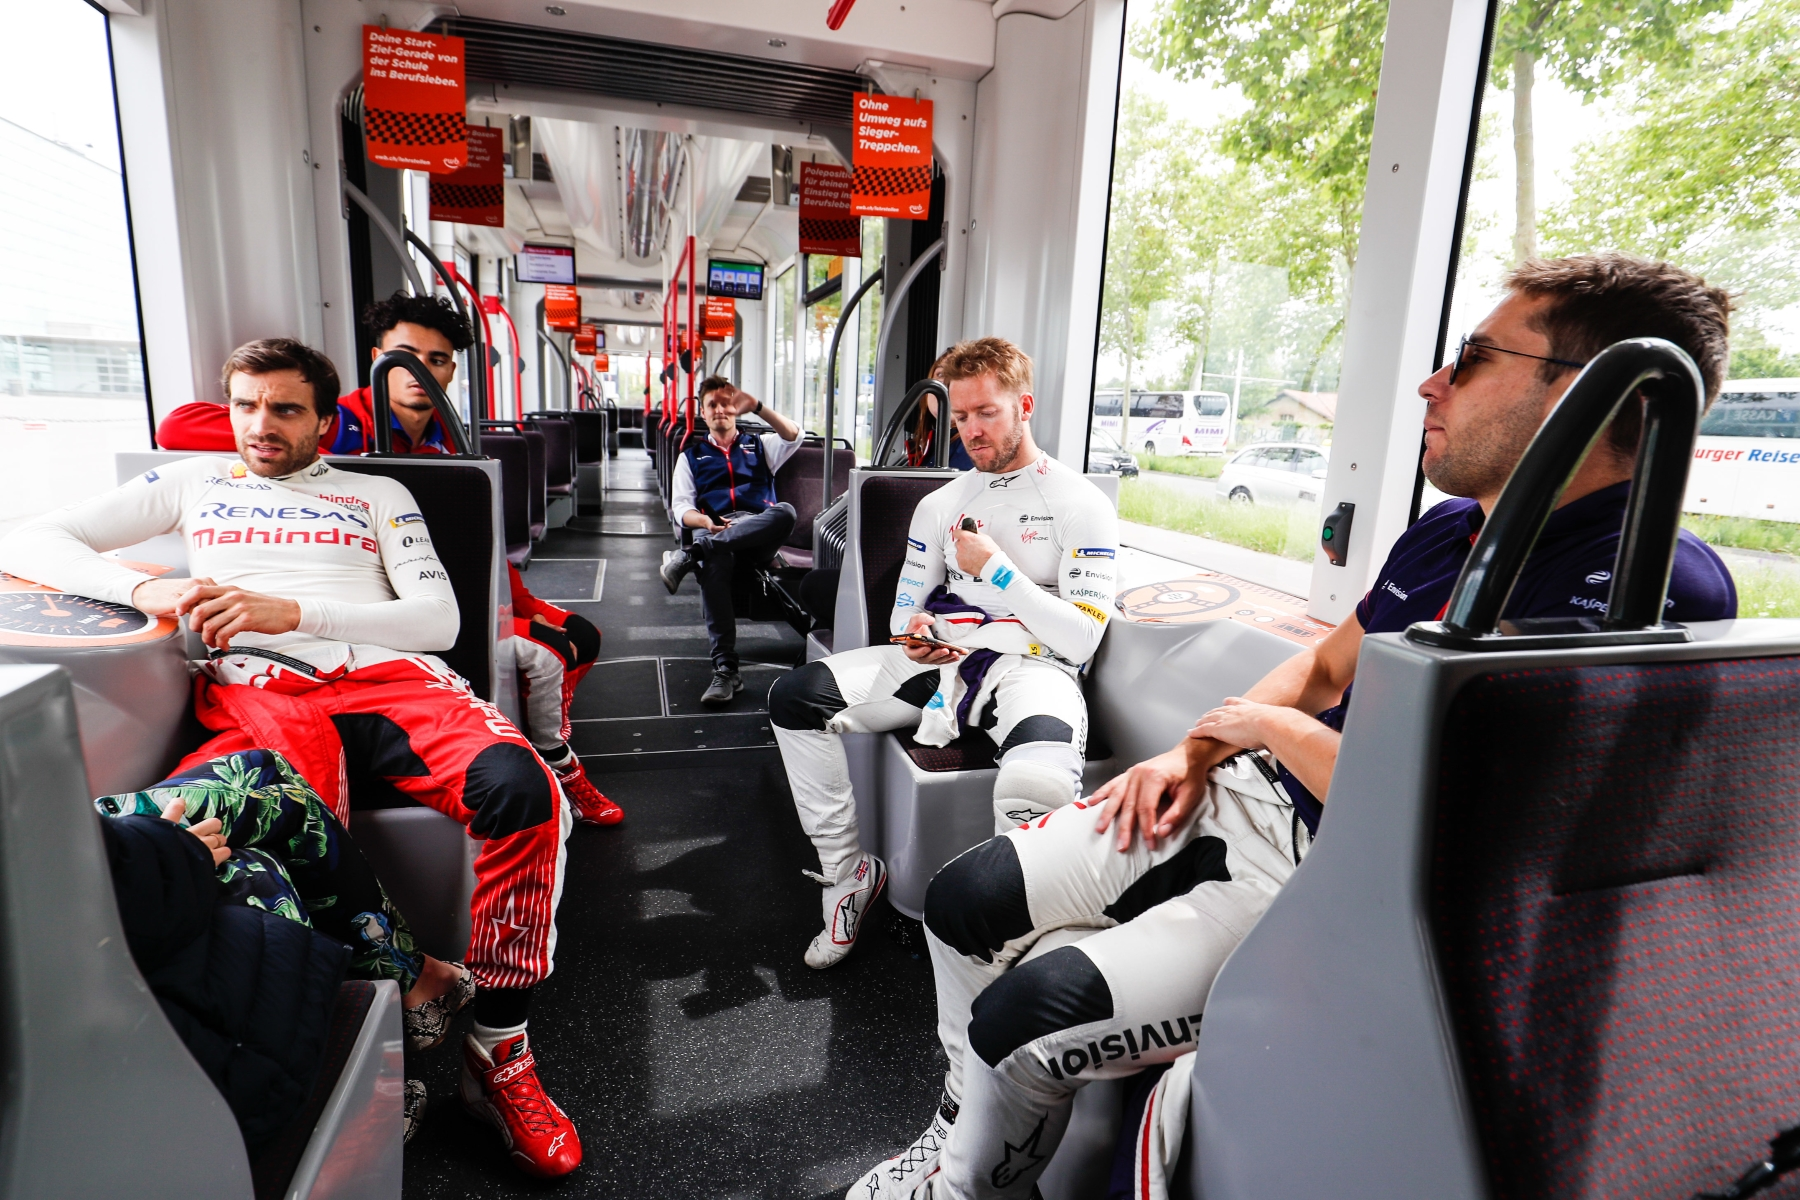 Top8-Bern-Drivers-sitting-in-tram.jpg